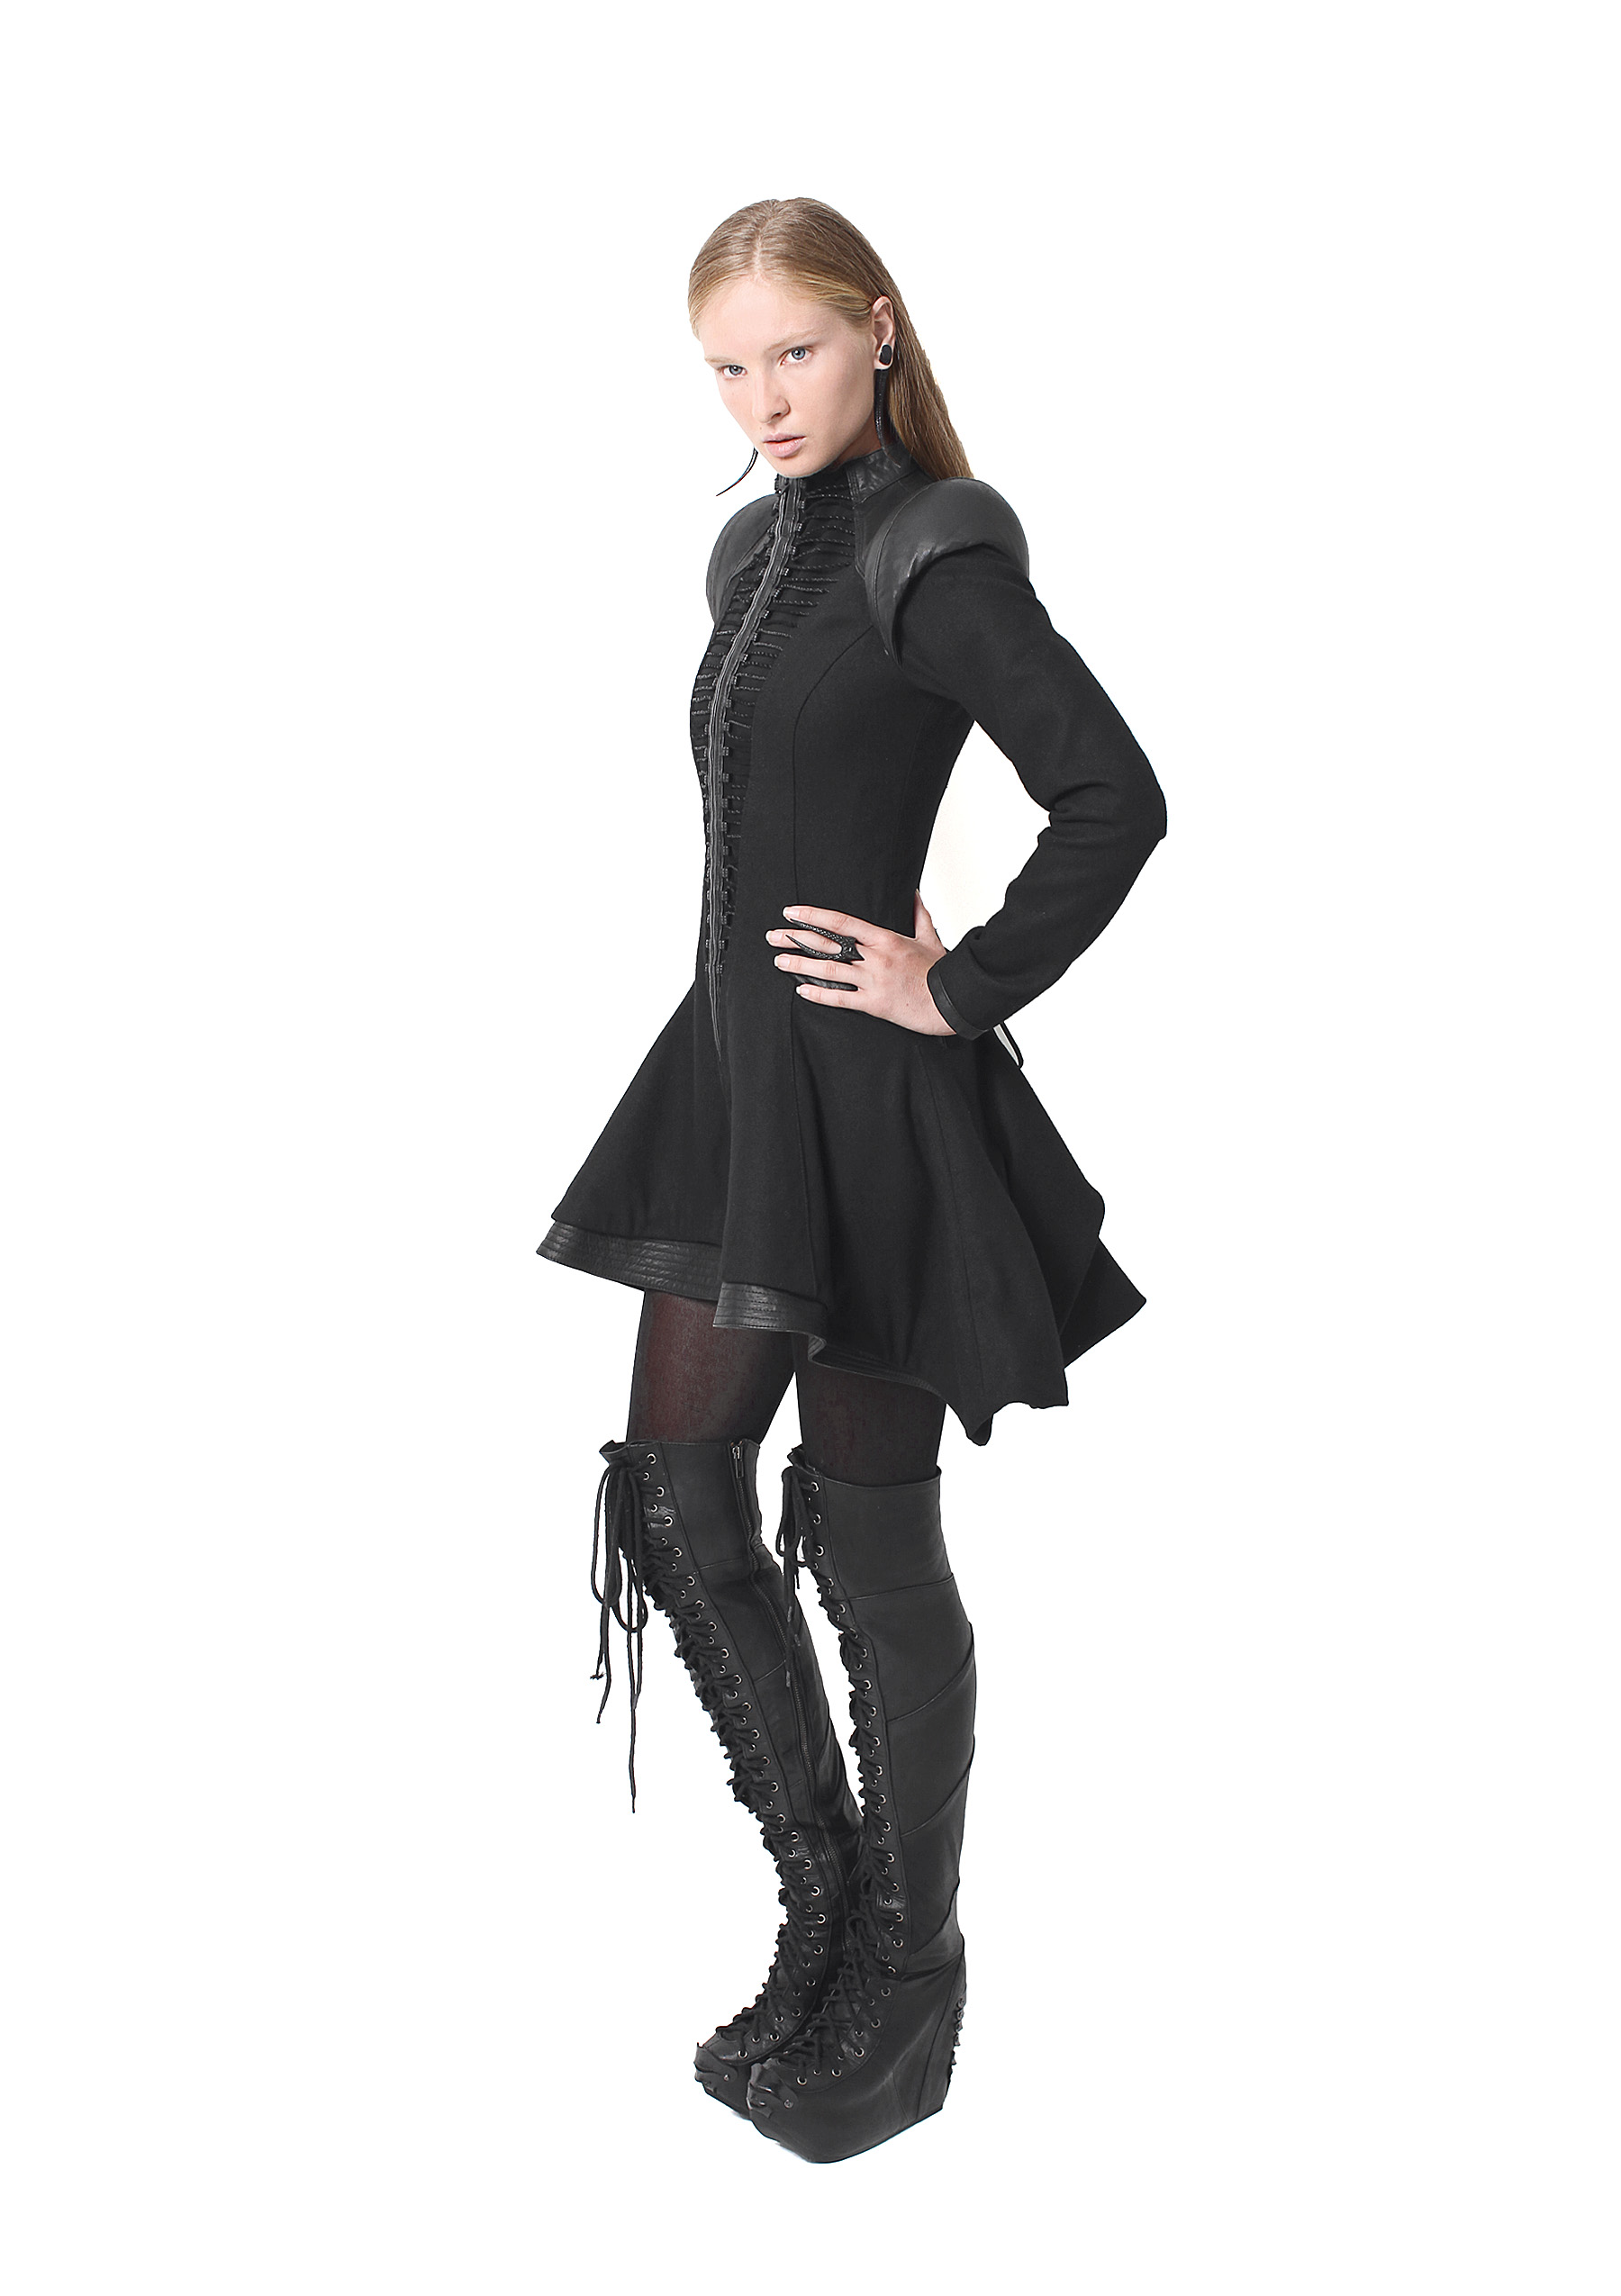 Stagger Frock Jacket, Long Plated Boots